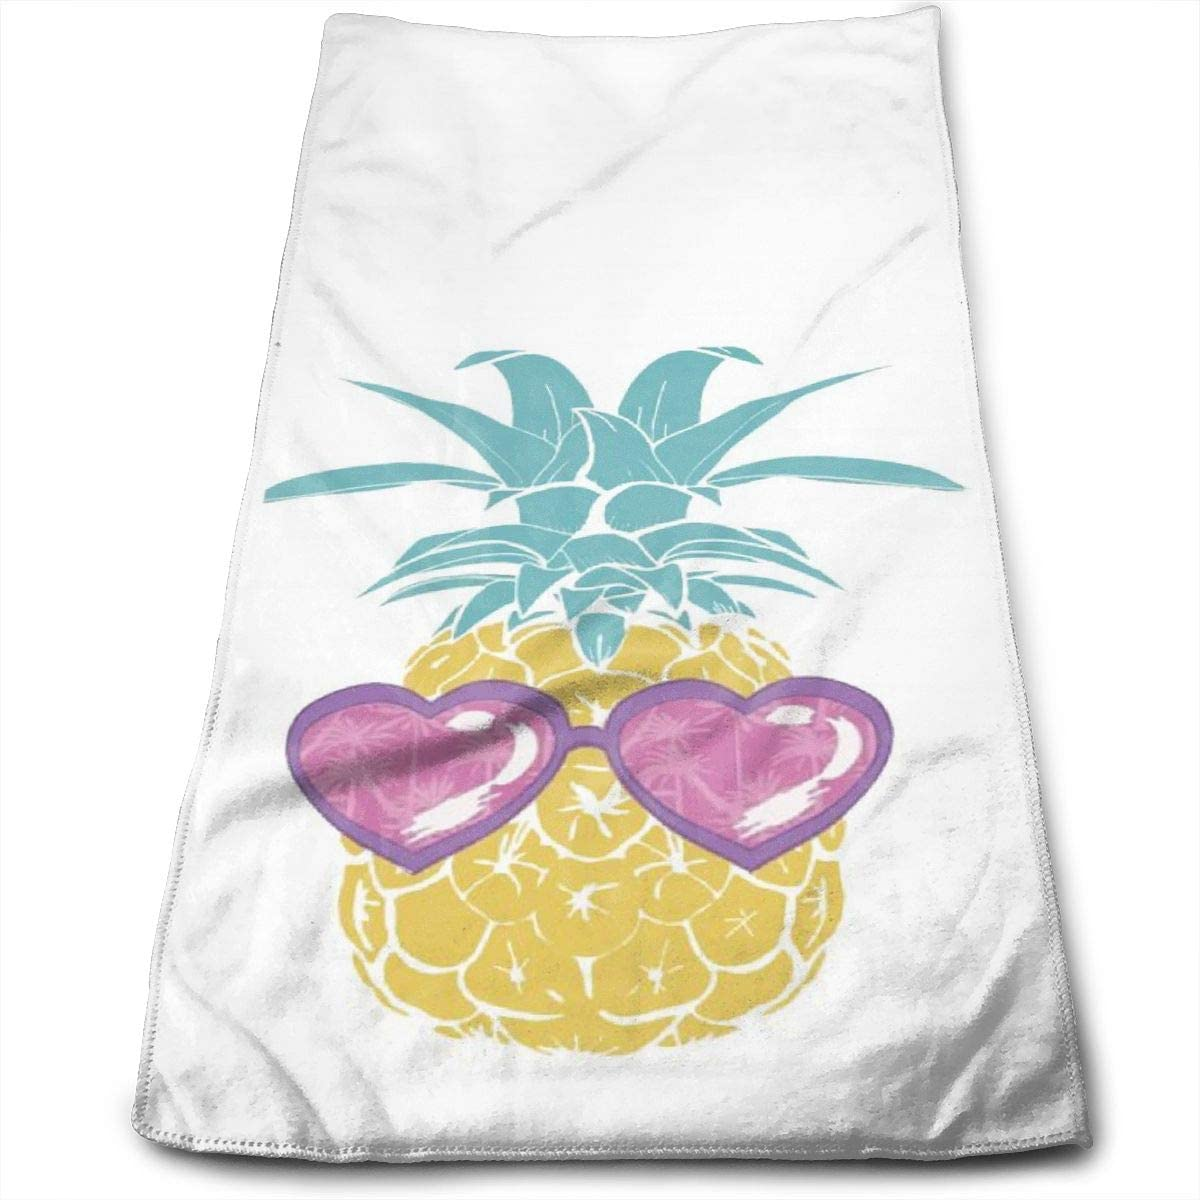 Fade-Resistant Hand Towel Pineapple with Sunglass Decorative Towels for Bath, Hand, Face, Gym and Spa